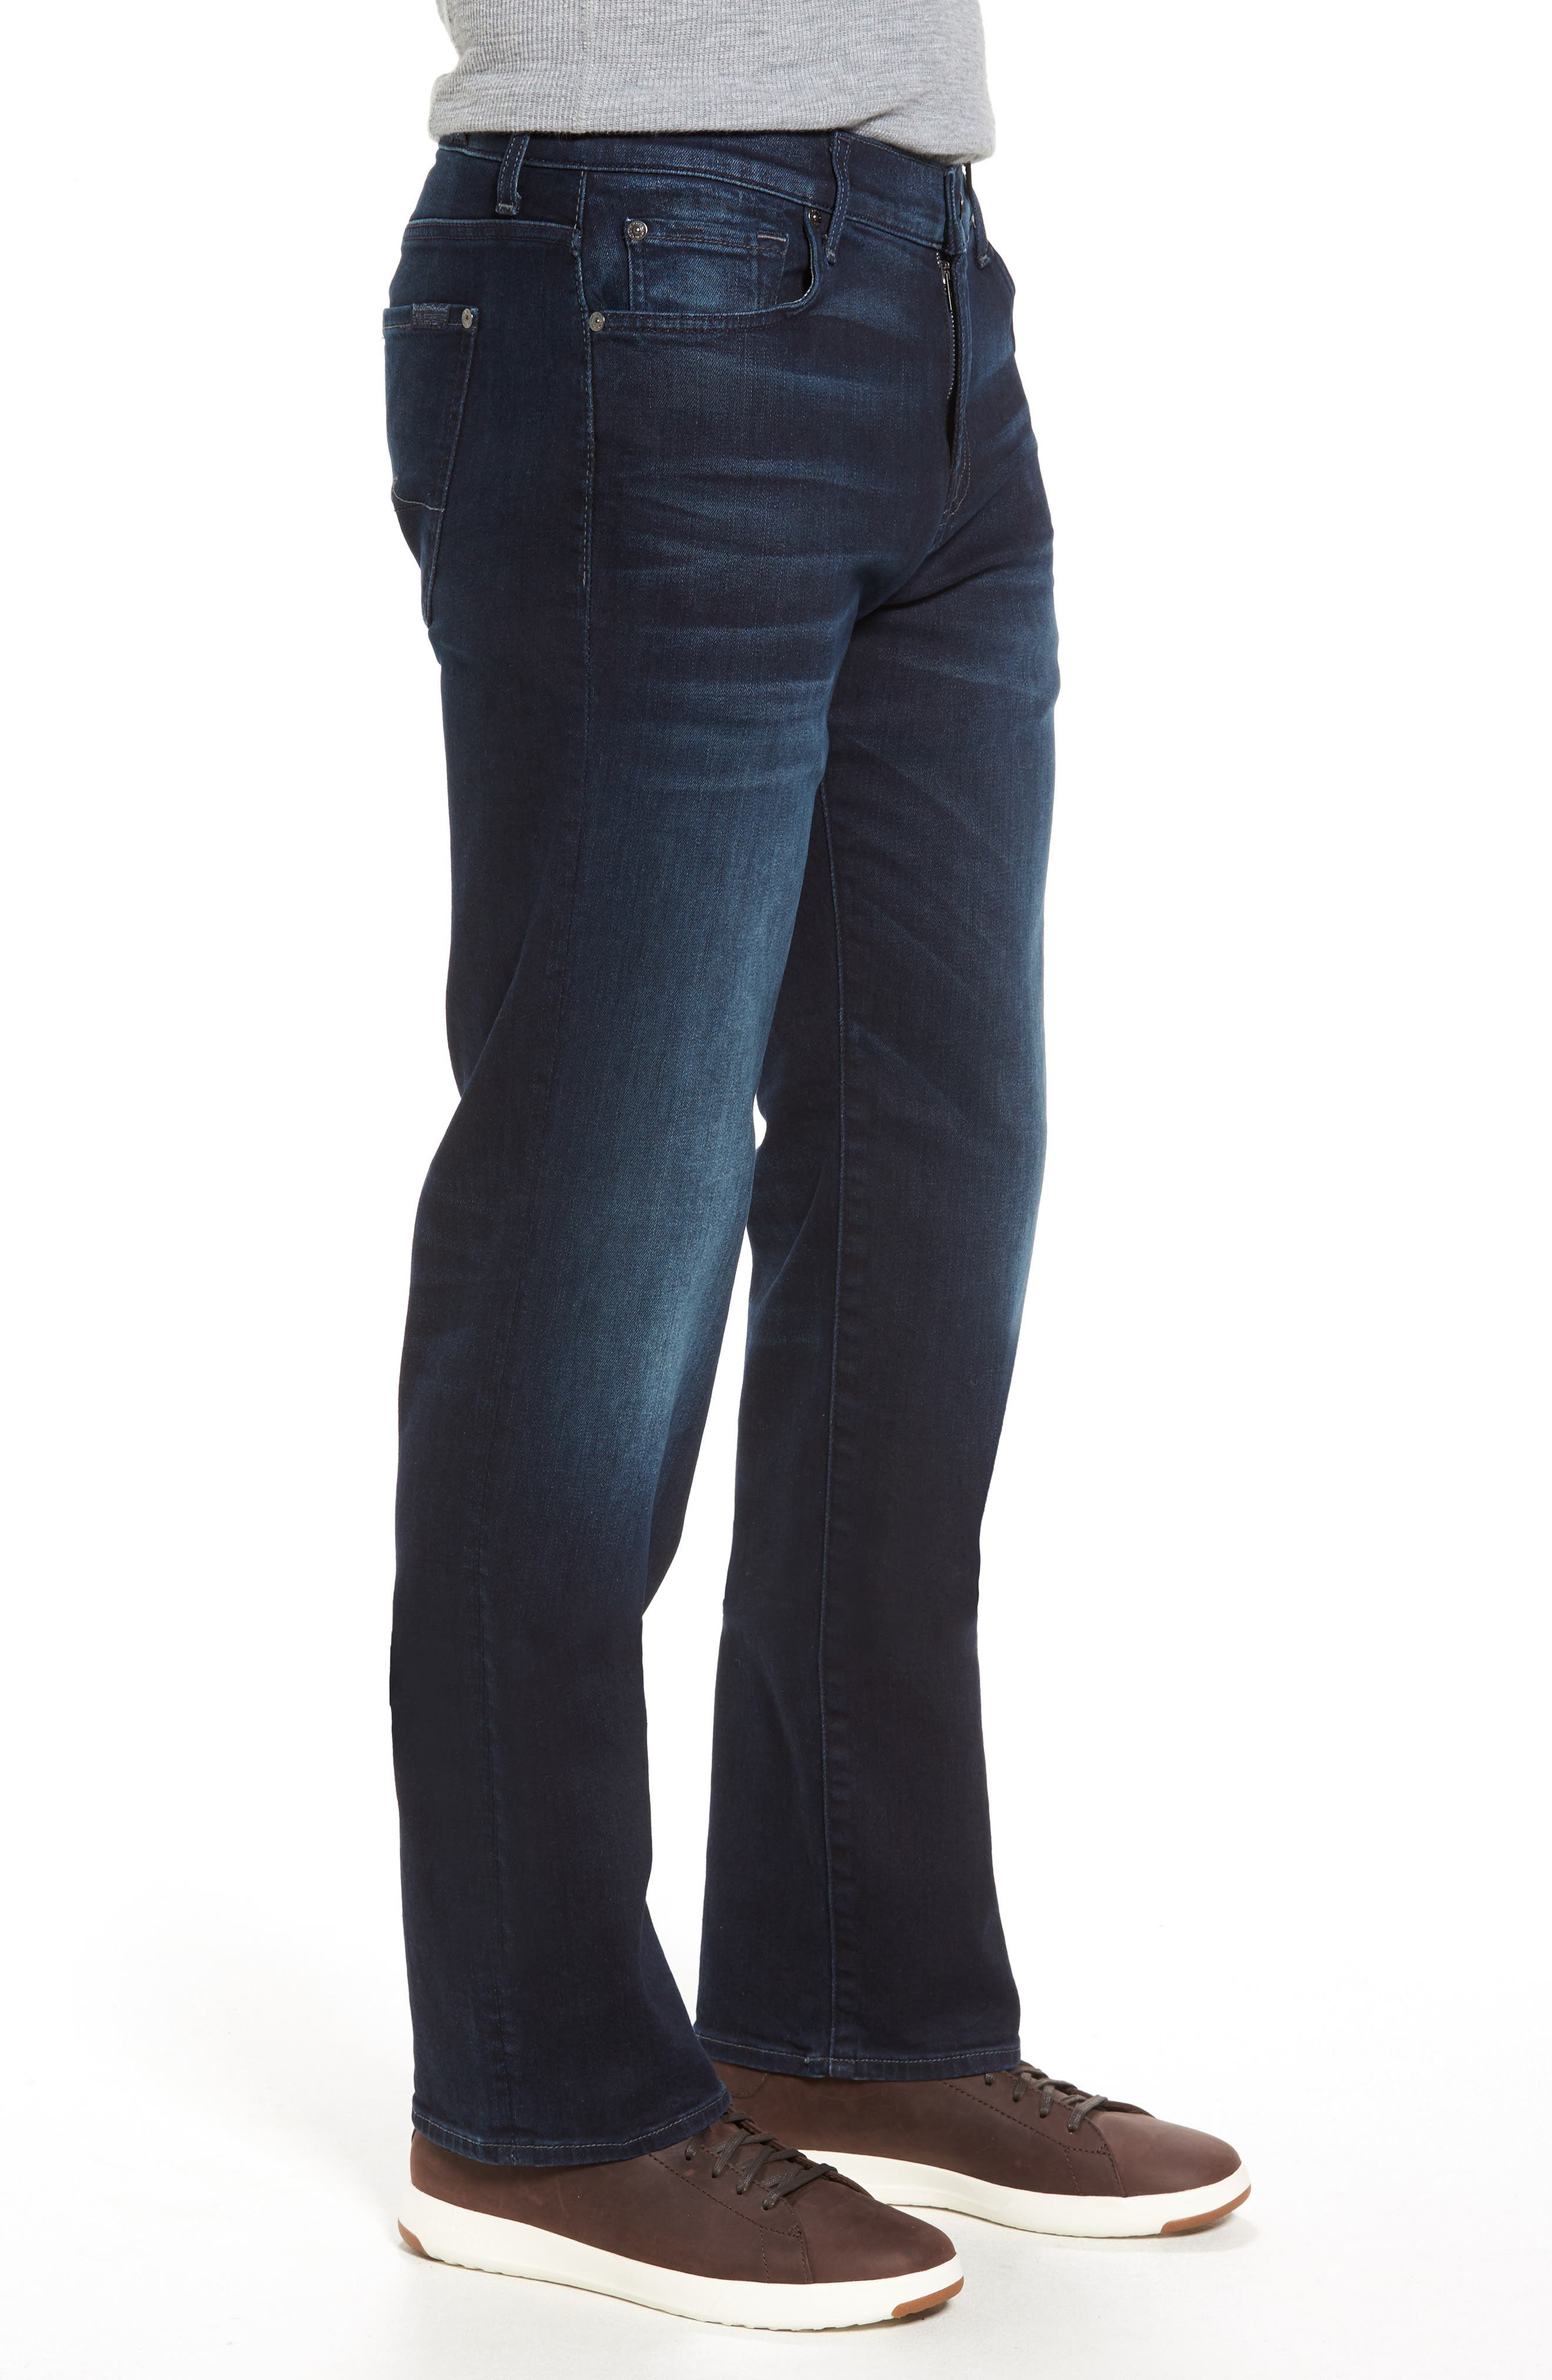 Austyn Relaxed Fit Jeans,                             Alternate thumbnail 3, color,